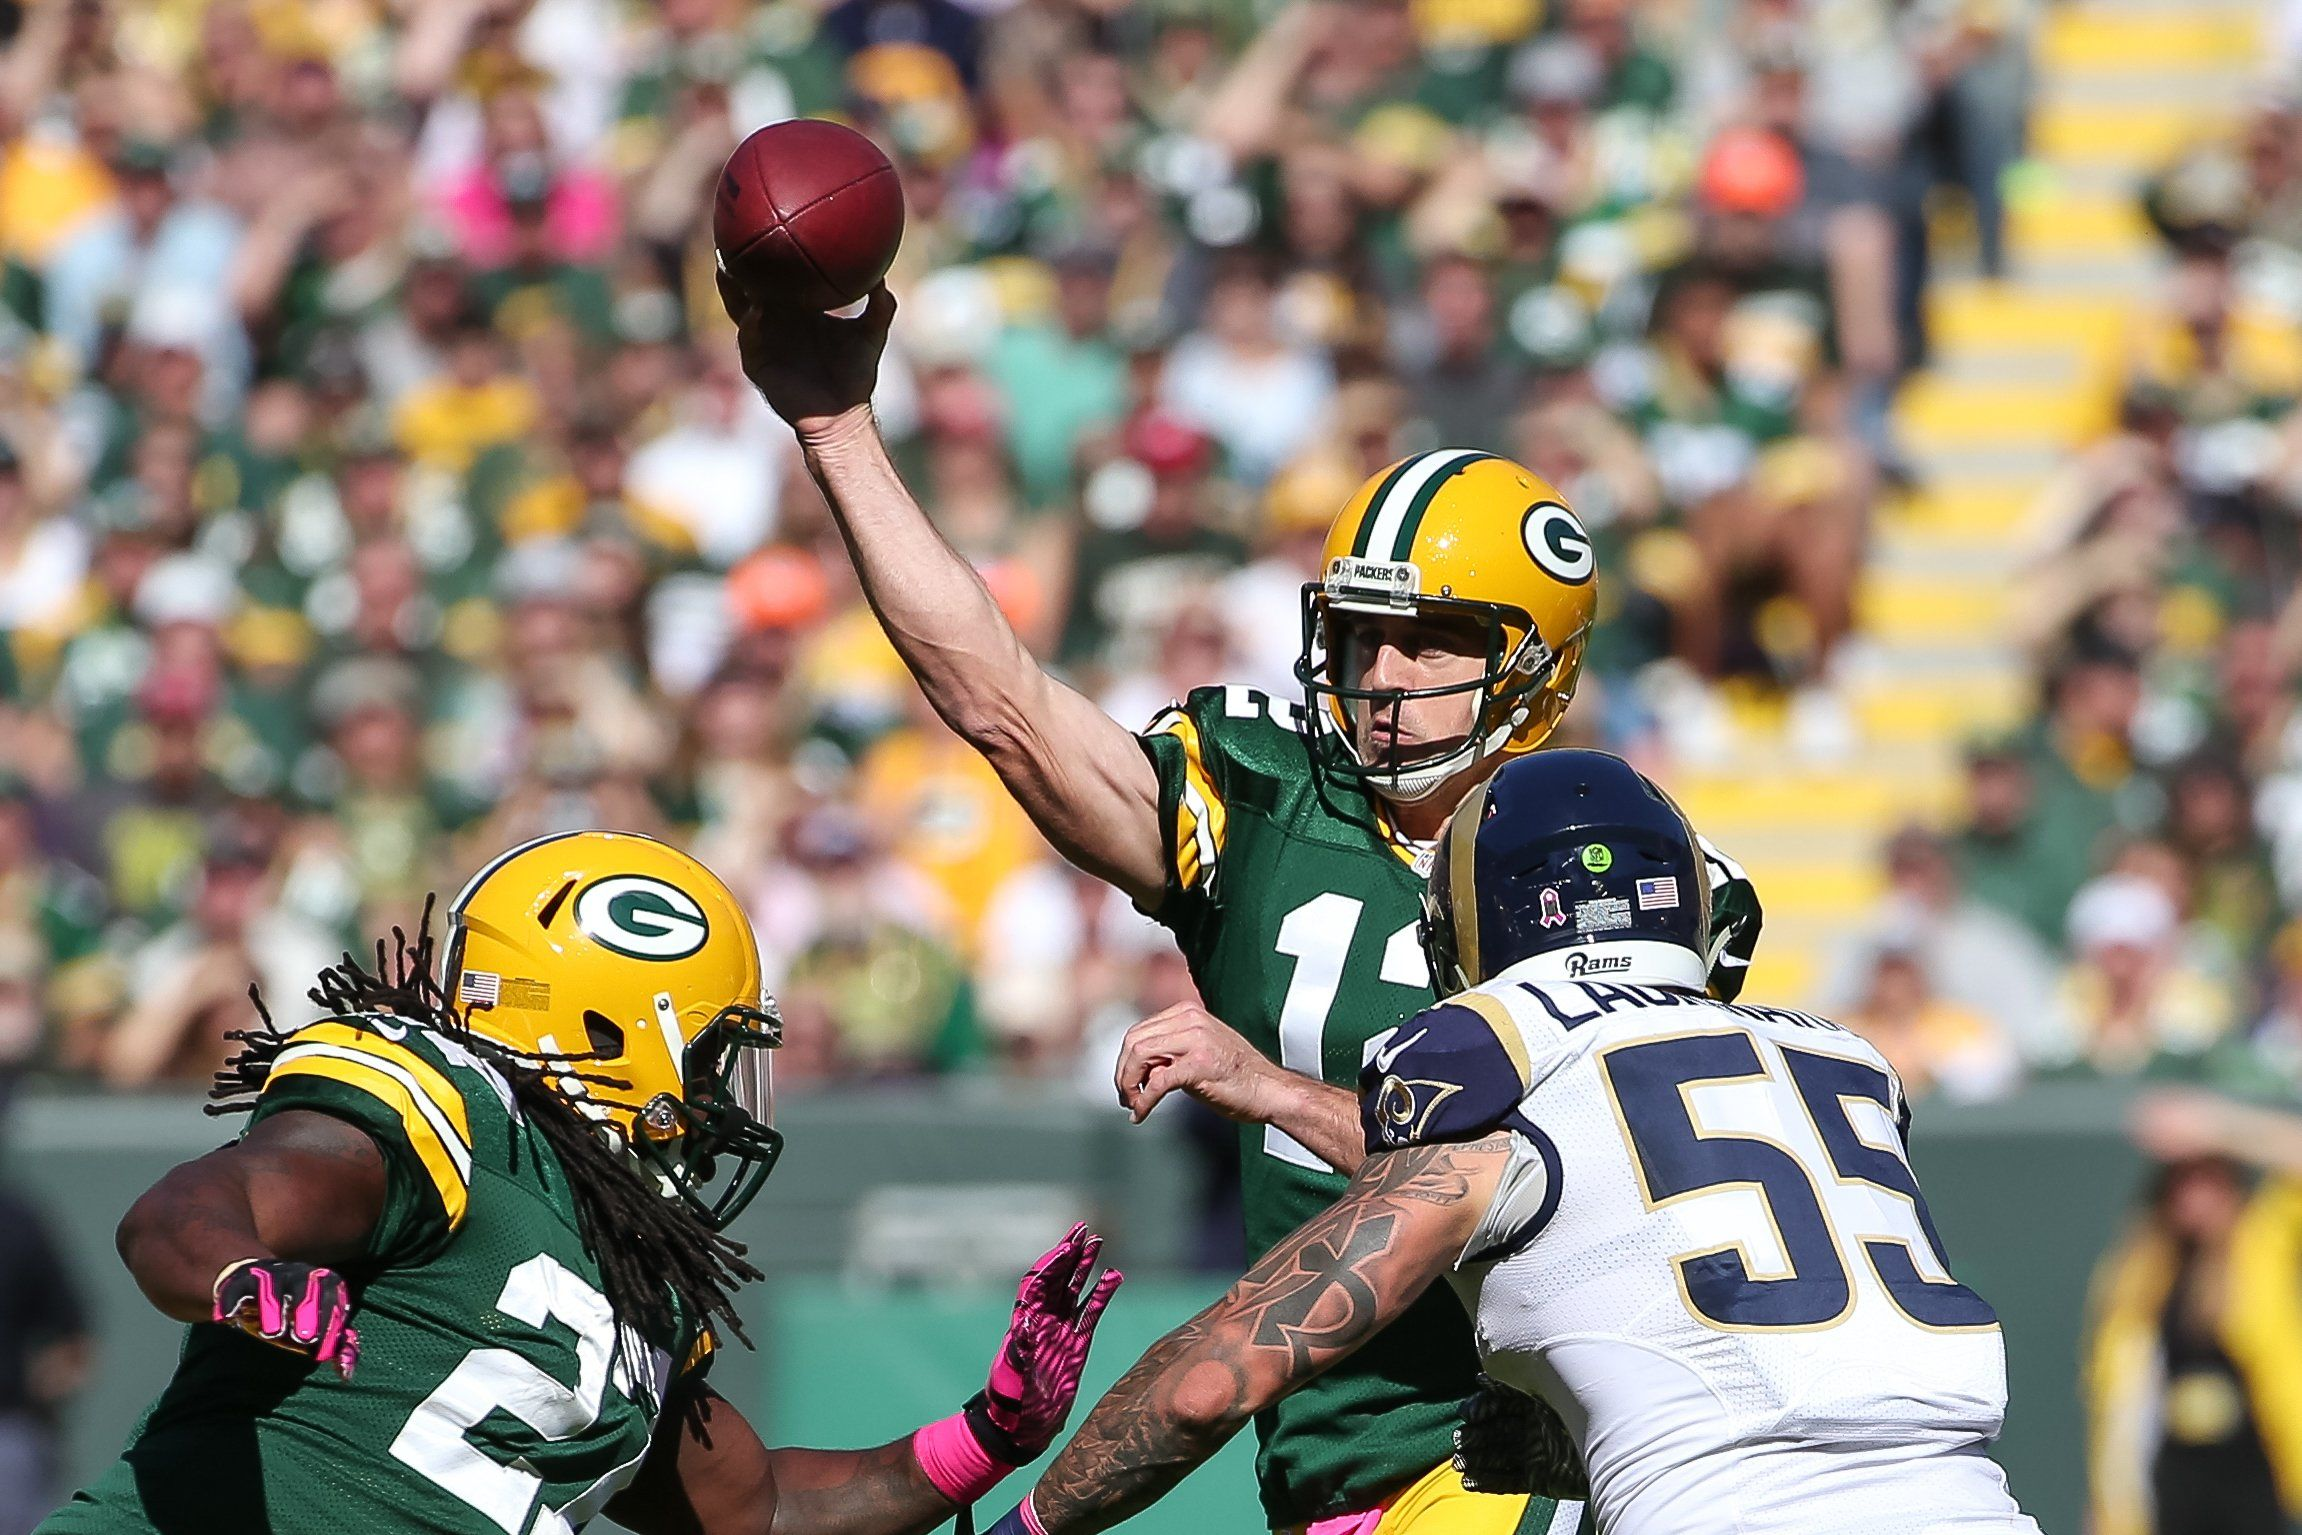 Aaron Rodgers Threw His First Interception At Lambeau Field In 3 Years Thelivefeeds Com Green Bay Packers Aaron Rodgers Lambeau Field Aaron Rodgers